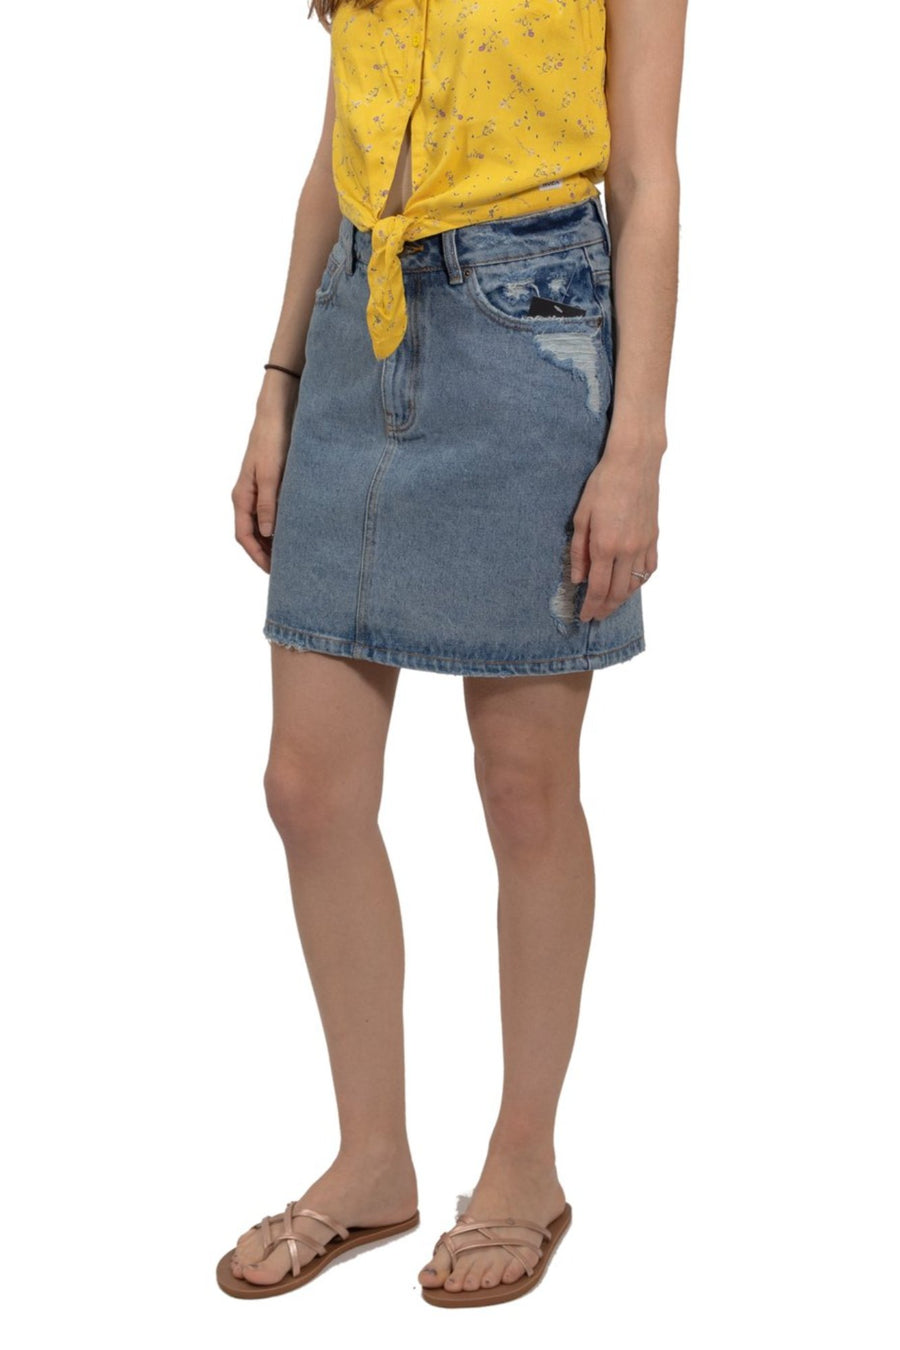 RVCA Jolt High Rise Skirt - Sky Blue